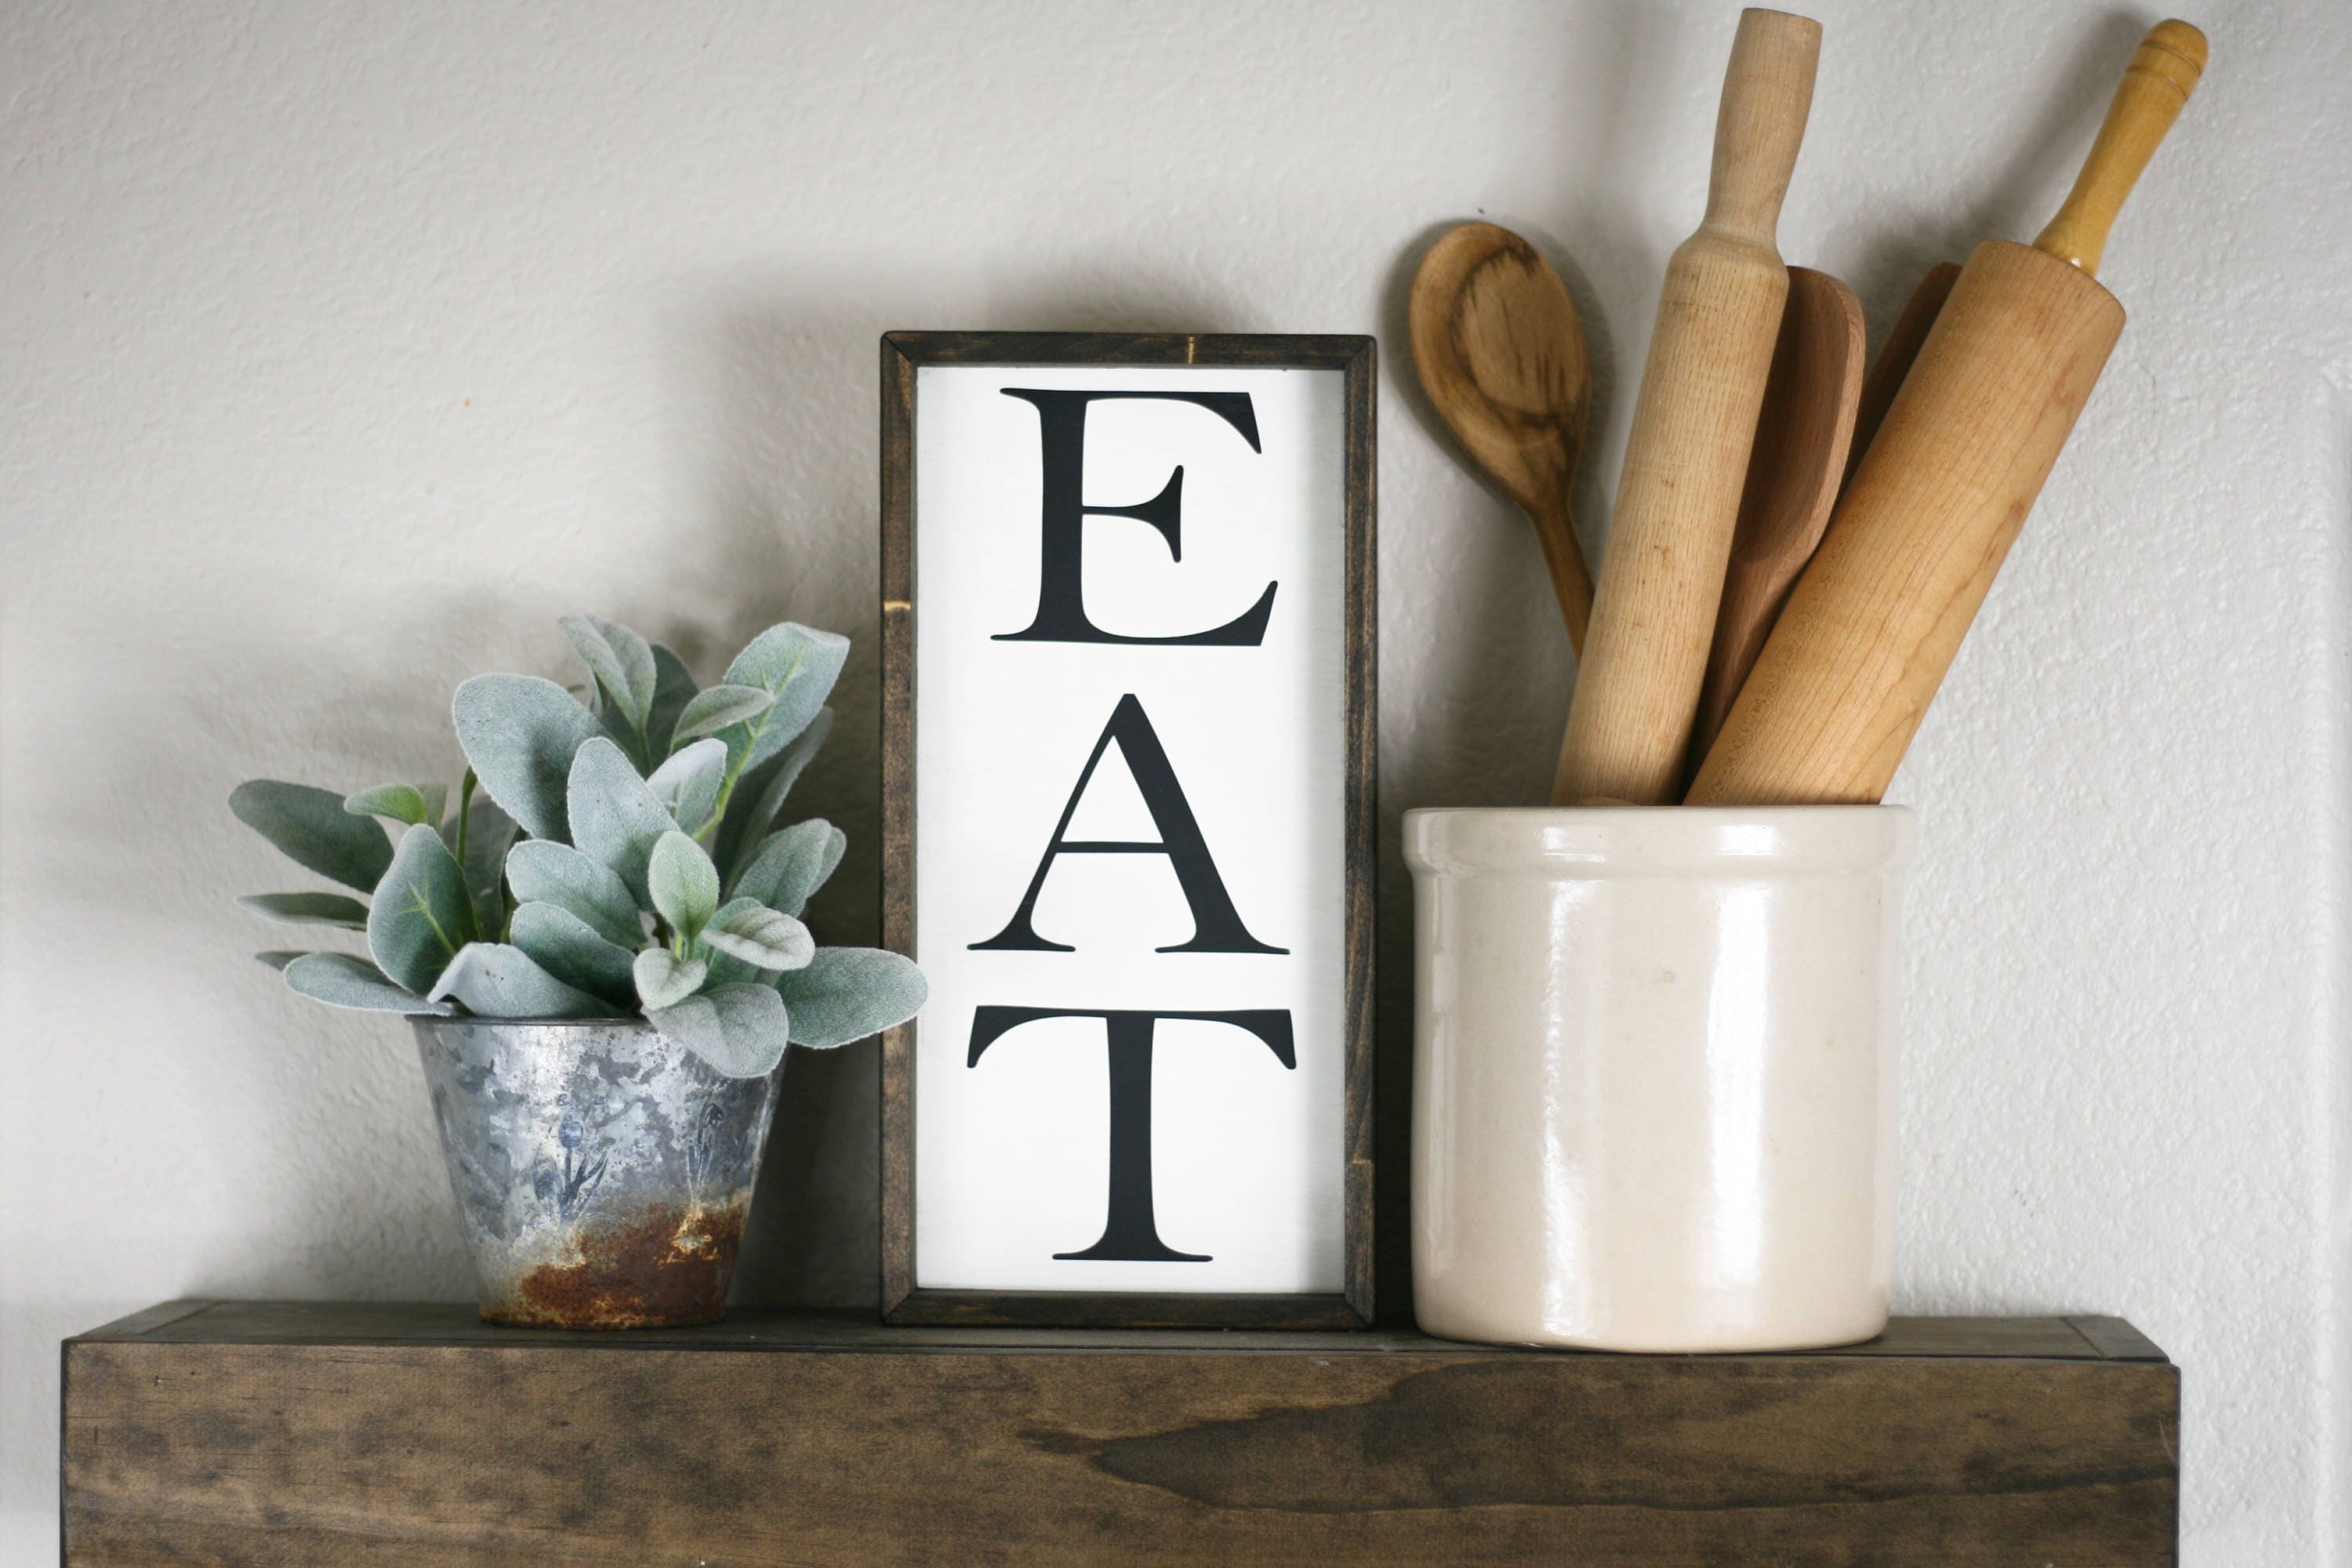 Eat Sign For Kitchen | Eat Sign Small Eat Wooden Sign 12x6 Kitchen Wall Decor